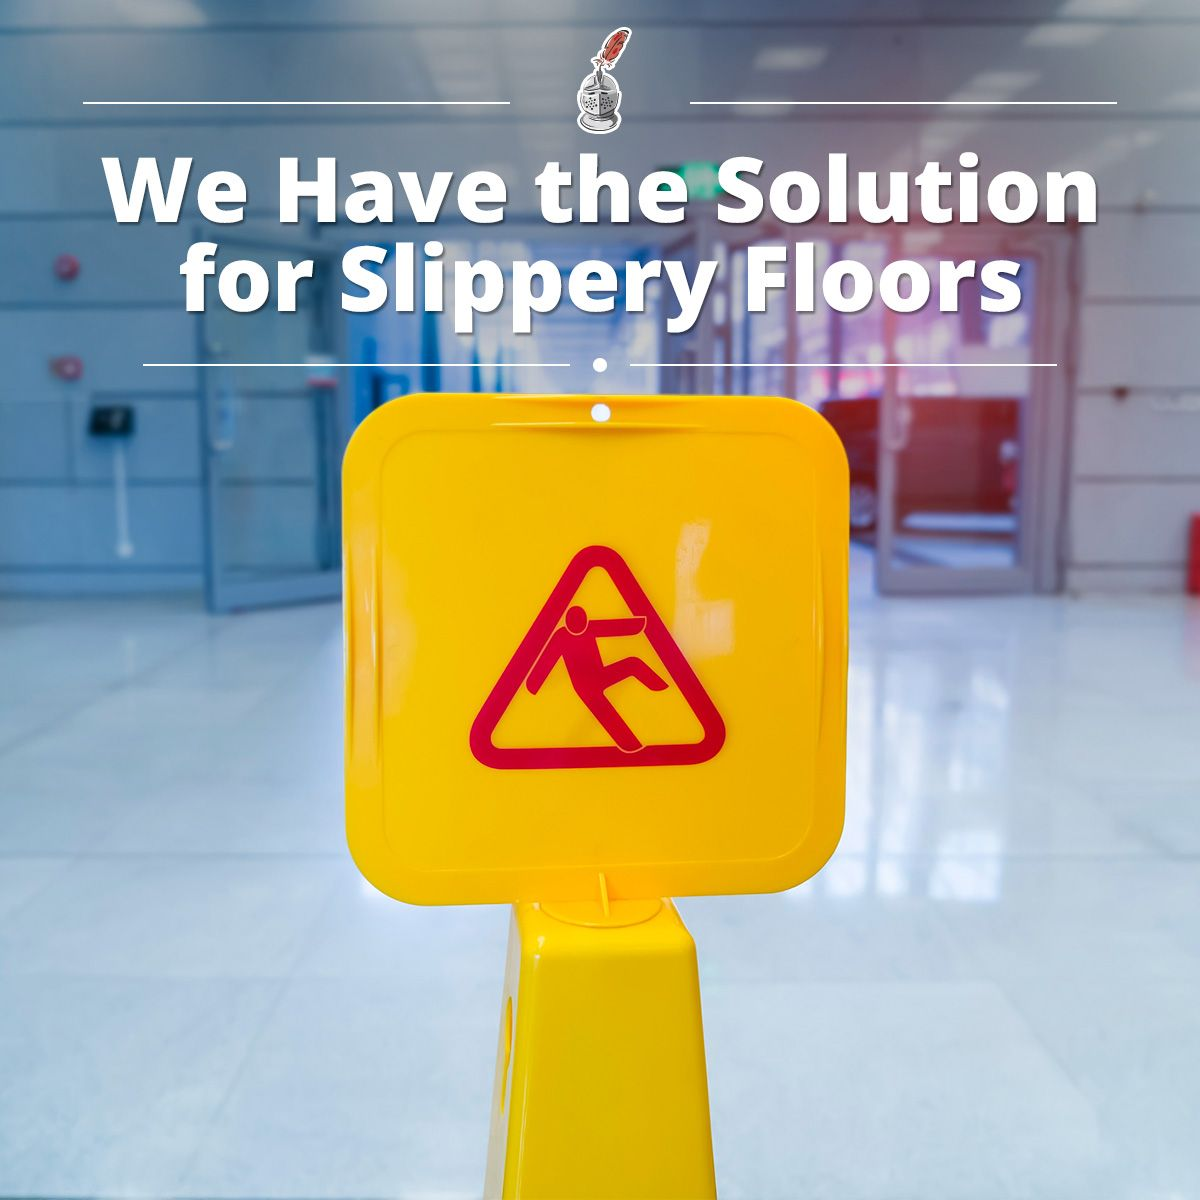 We Have the Solution for Slippery Floors